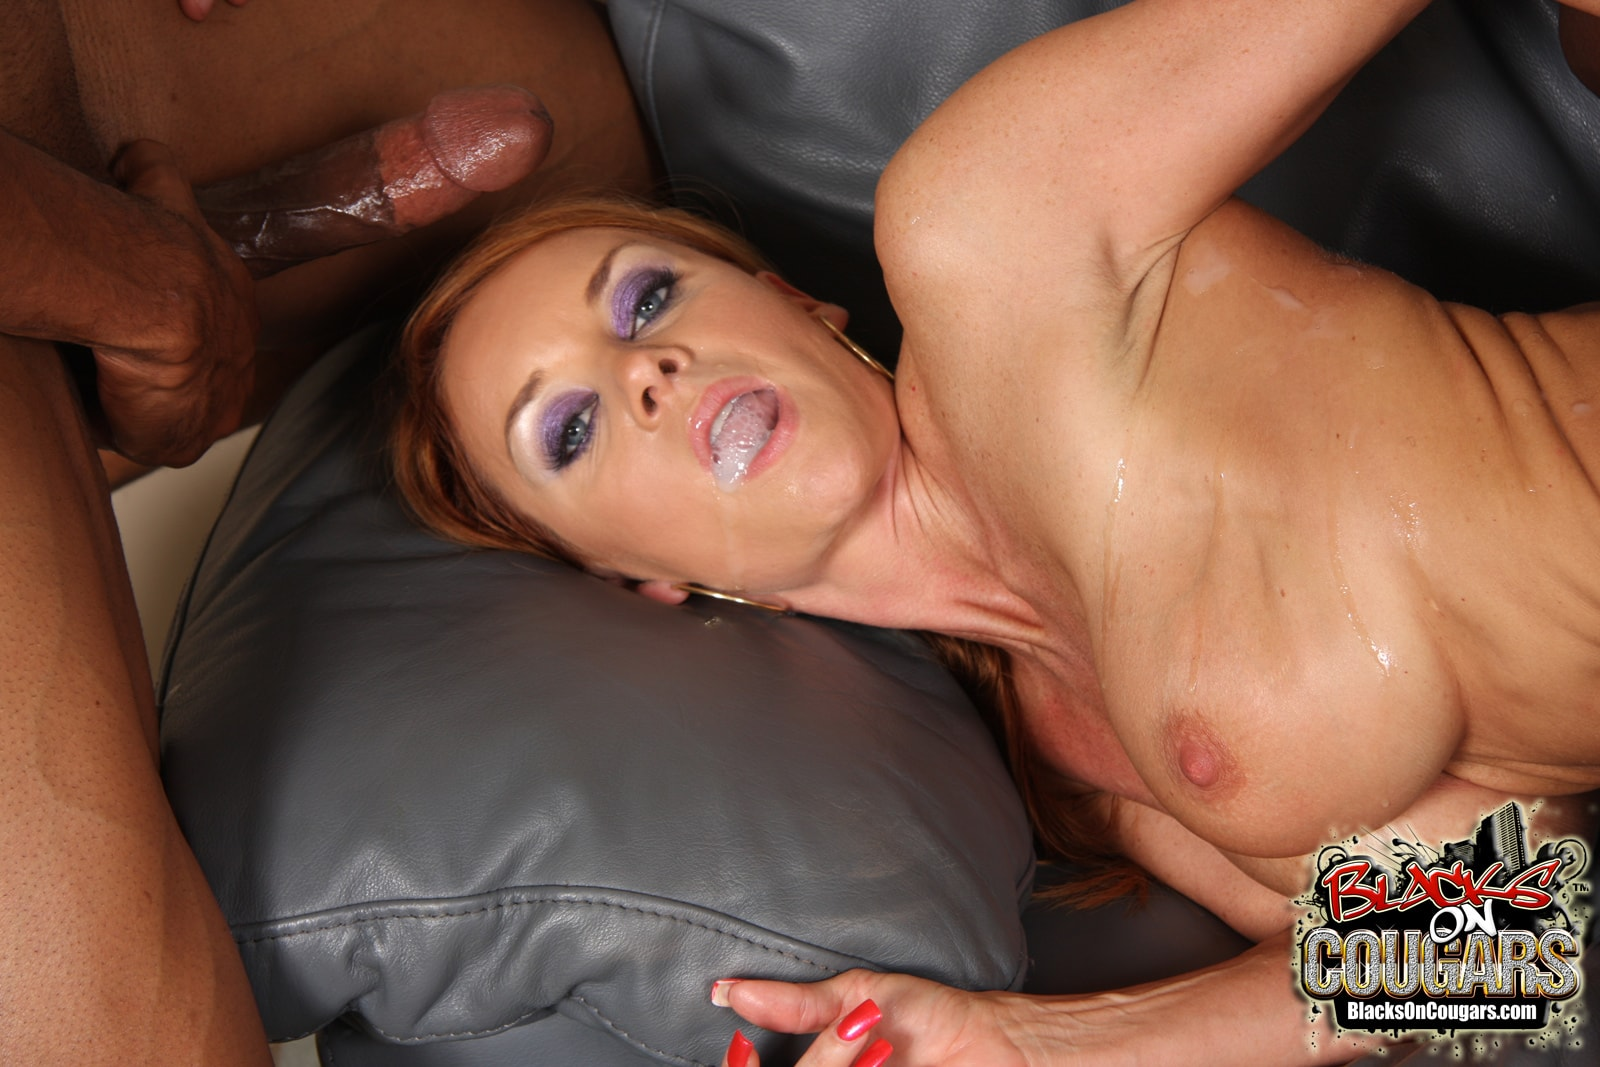 Janet mason in a ripped body stockings rides extra big cock